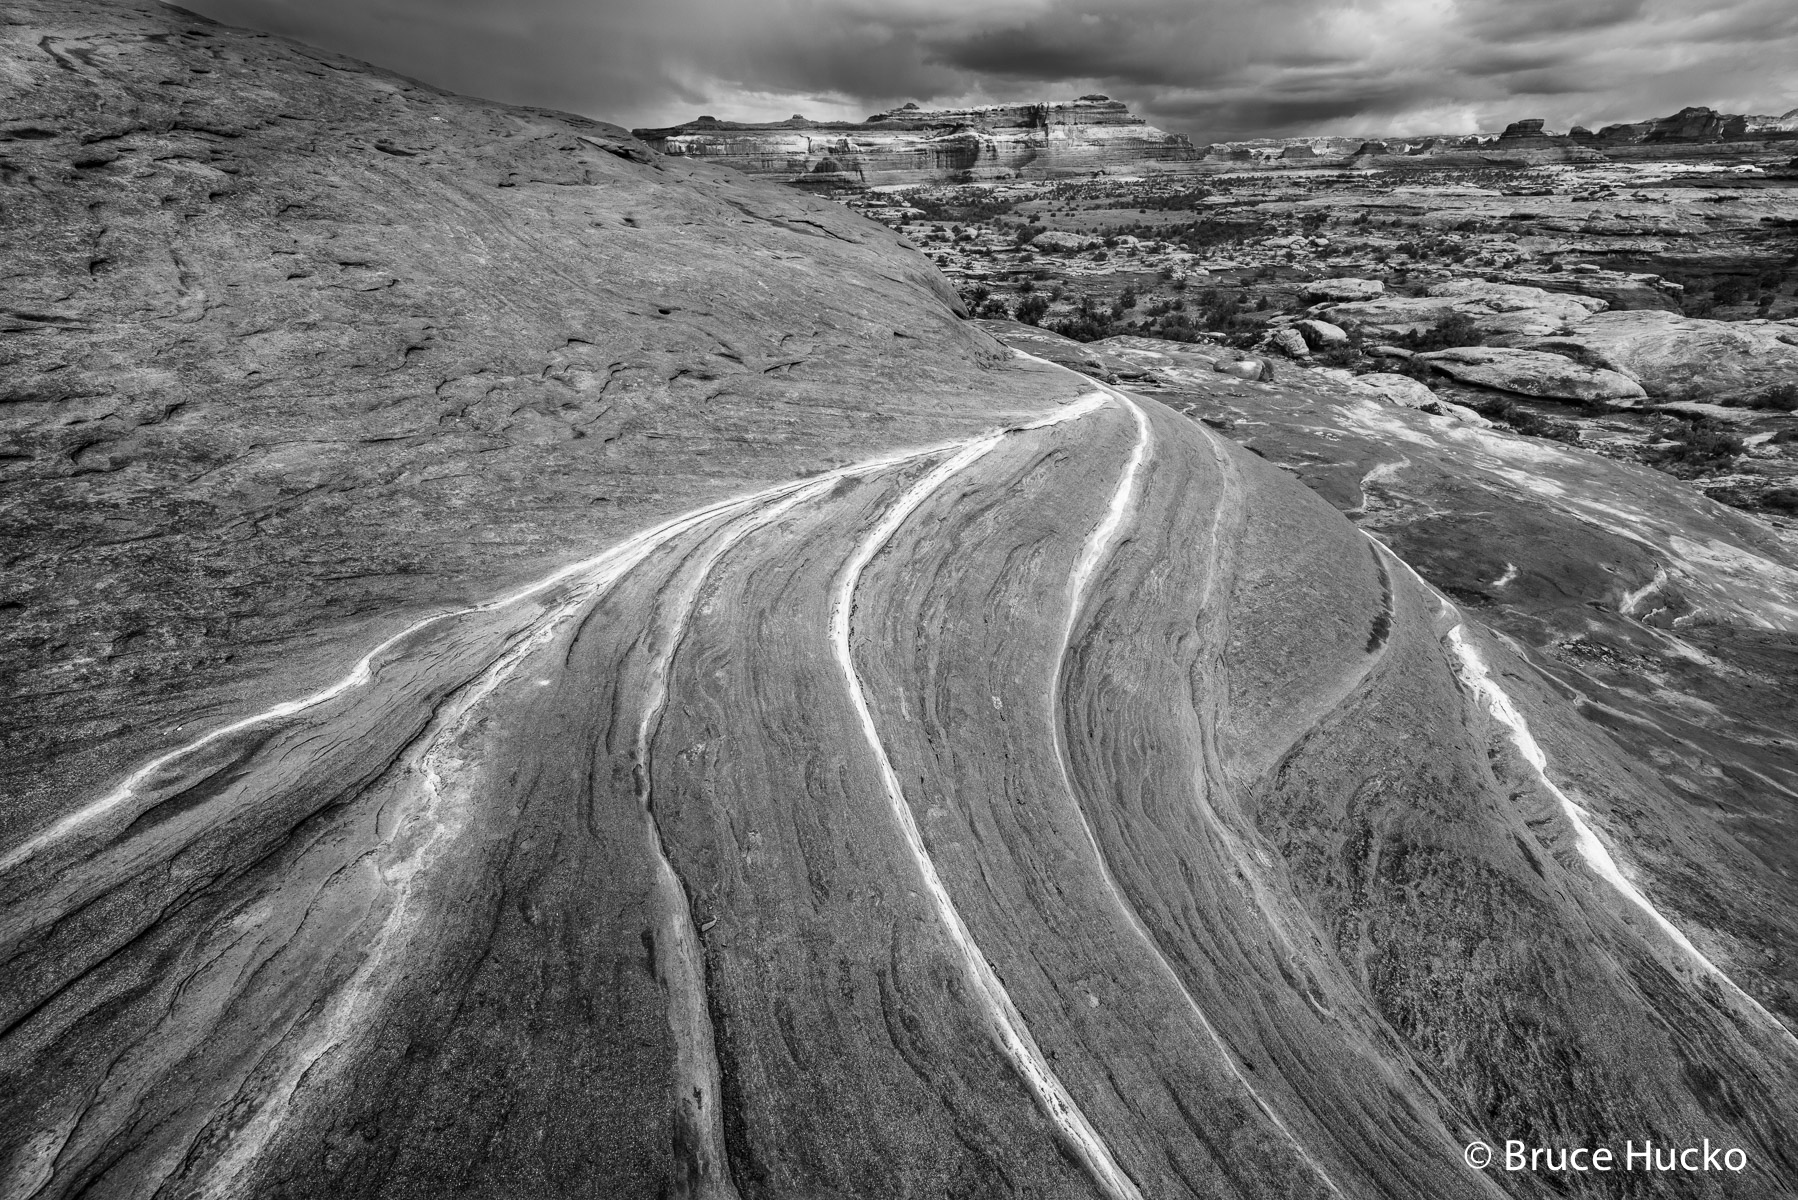 Canyonlands BW, Canyonlands NPS, Canyonlands National Park, photo